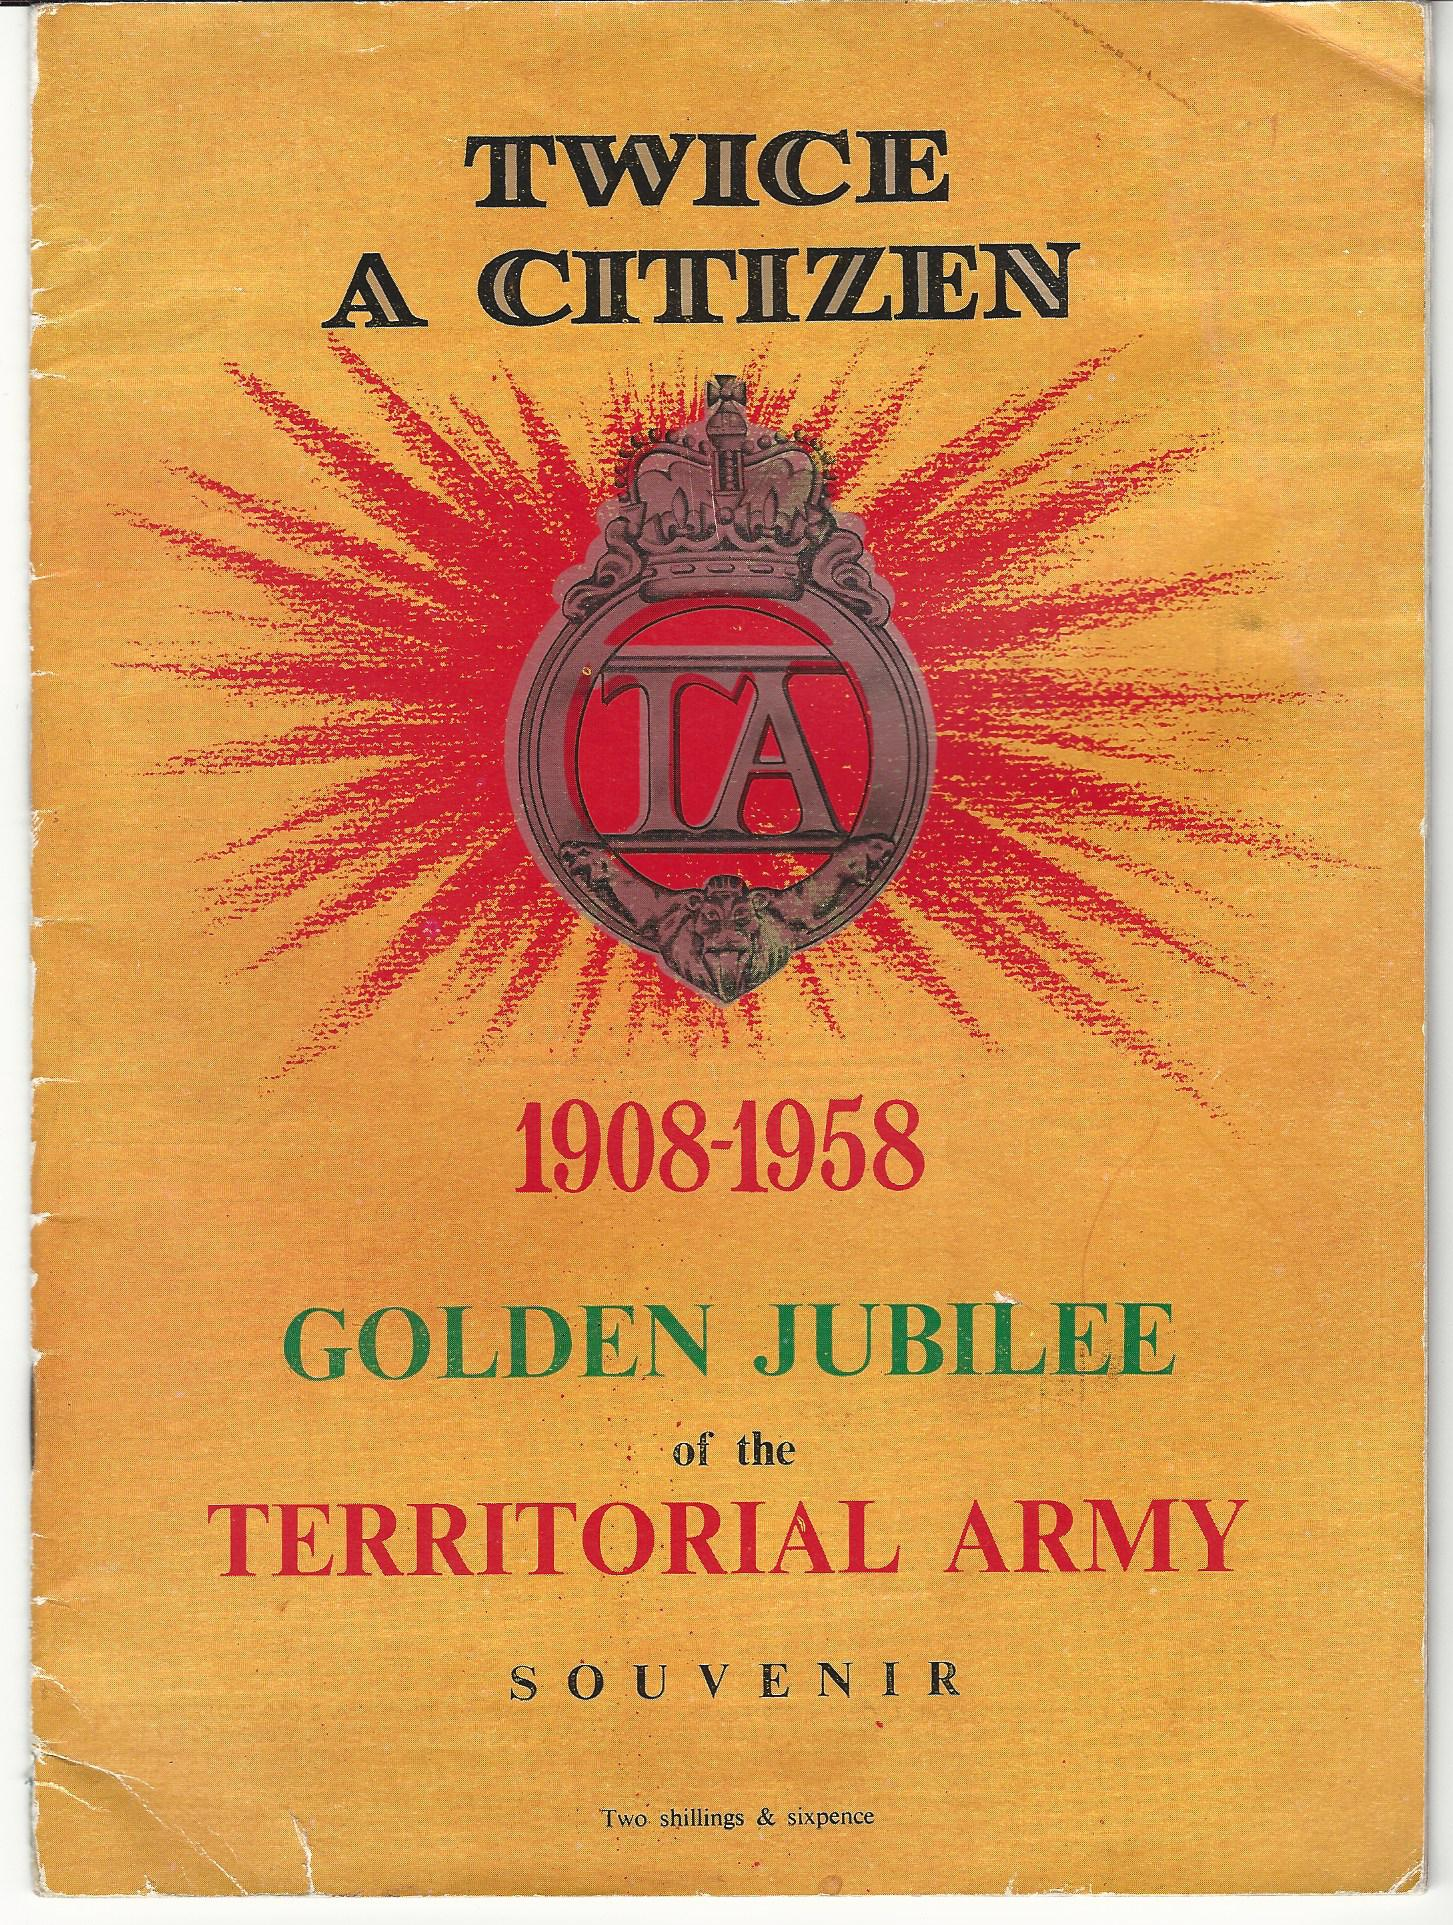 Image for Twice A Citizen 1908-1958, Golden Jubilee of the Territorial Army Souvenir.